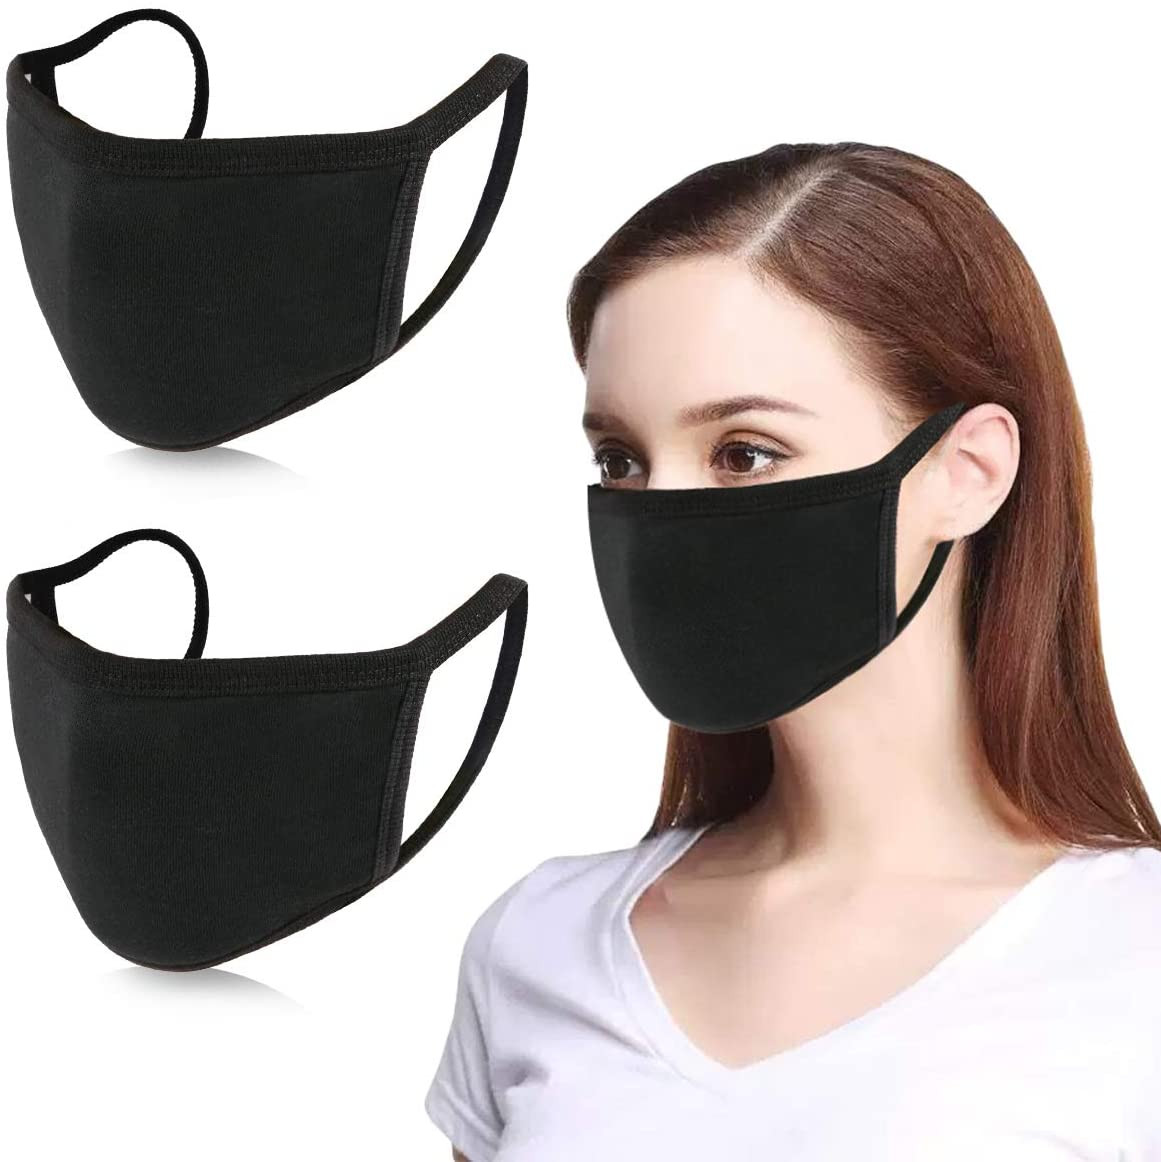 2 Pcs Face Maske Unisex Outdoor Cycling Dustproof Cotton Mascarillas Reusable Anti-fog Safety Face Respirator Cover Washable